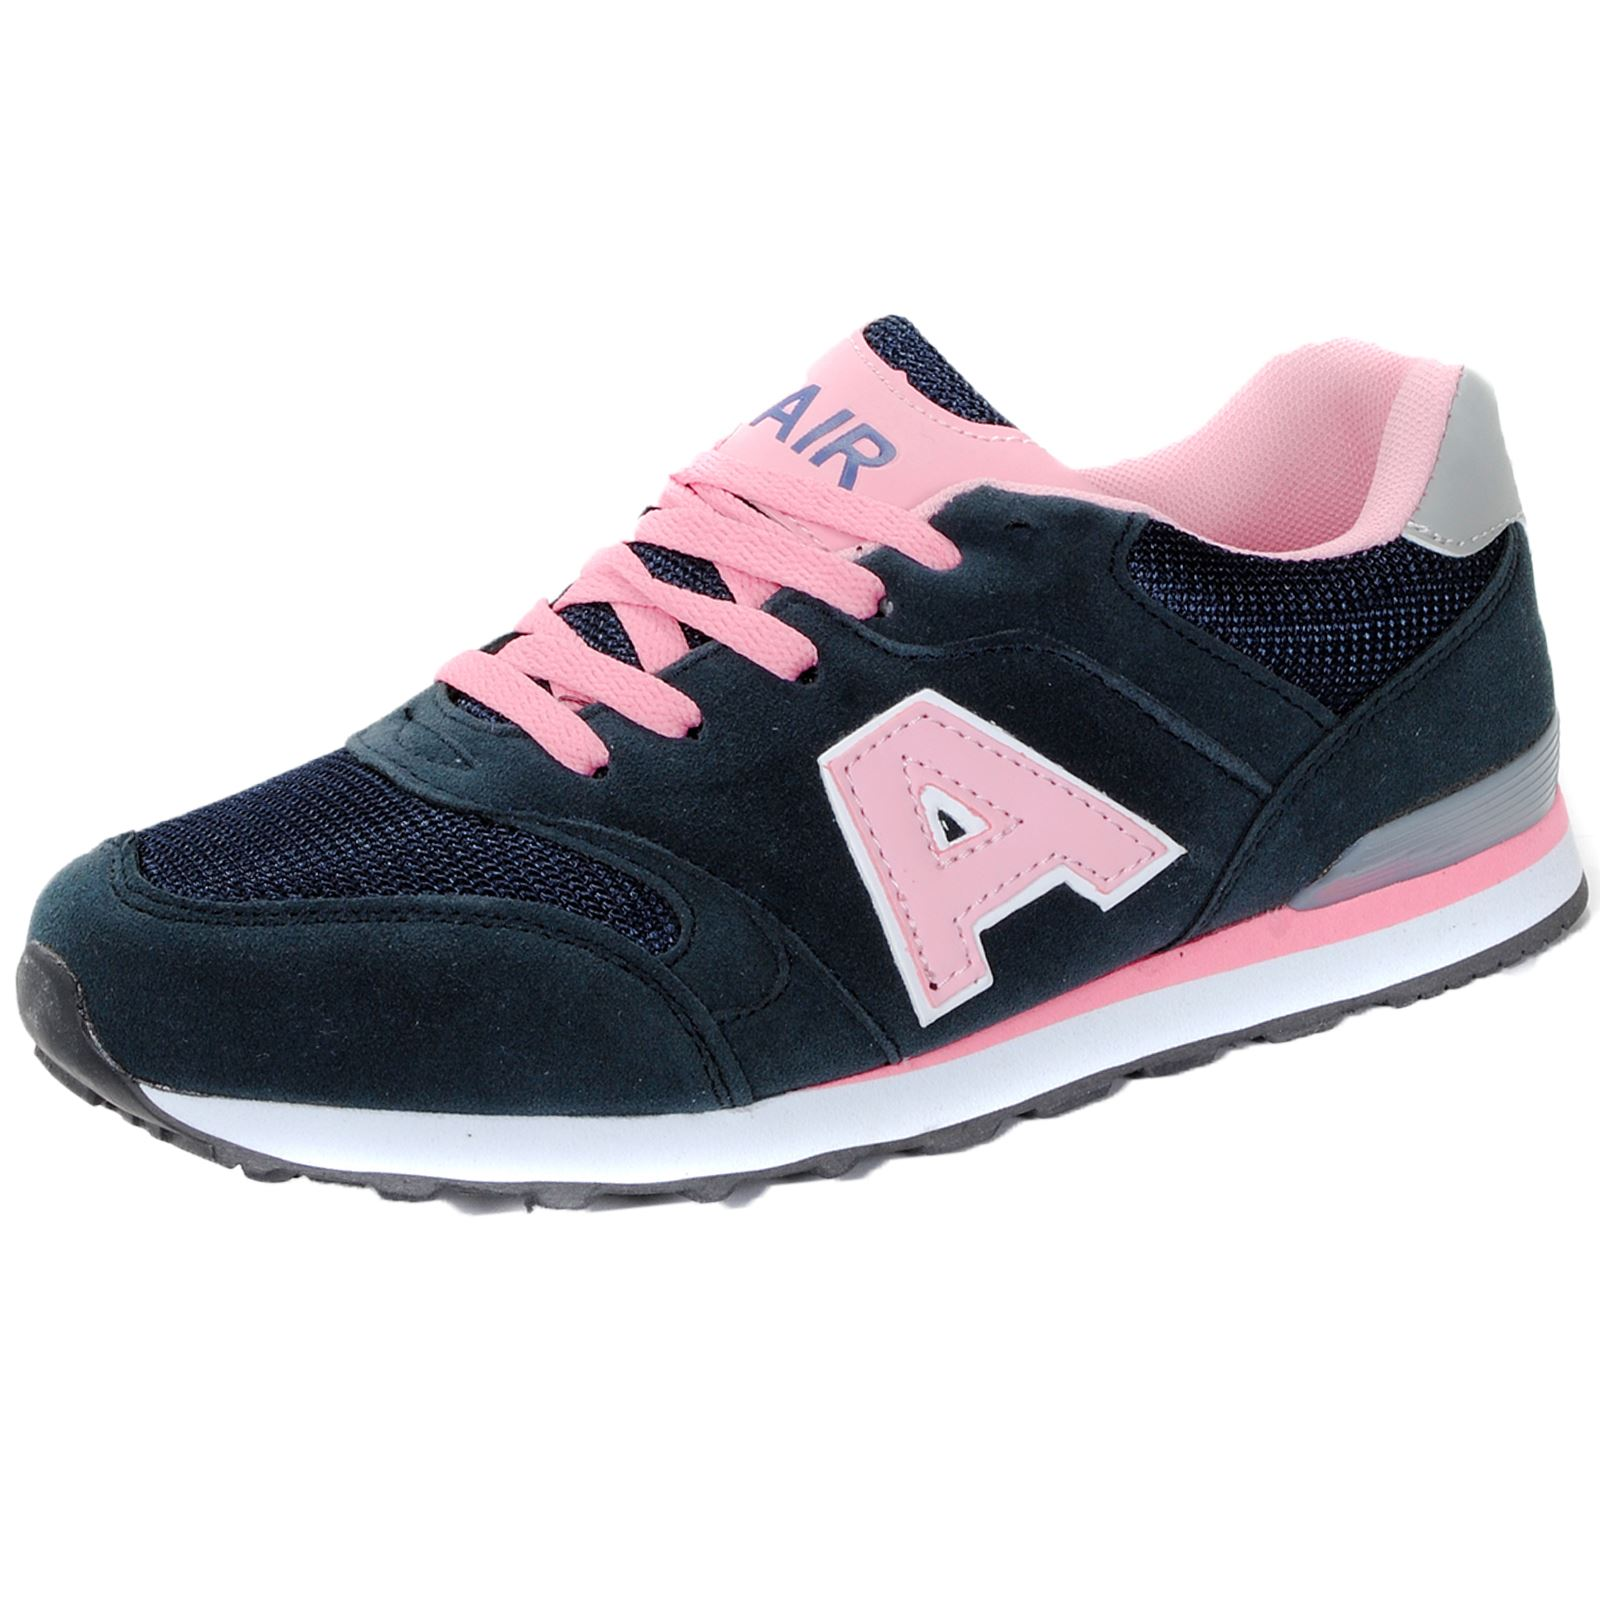 LADIES SPORTS TRAINERS GYM JOGGING RUNNING CASUAL TRAINER ...